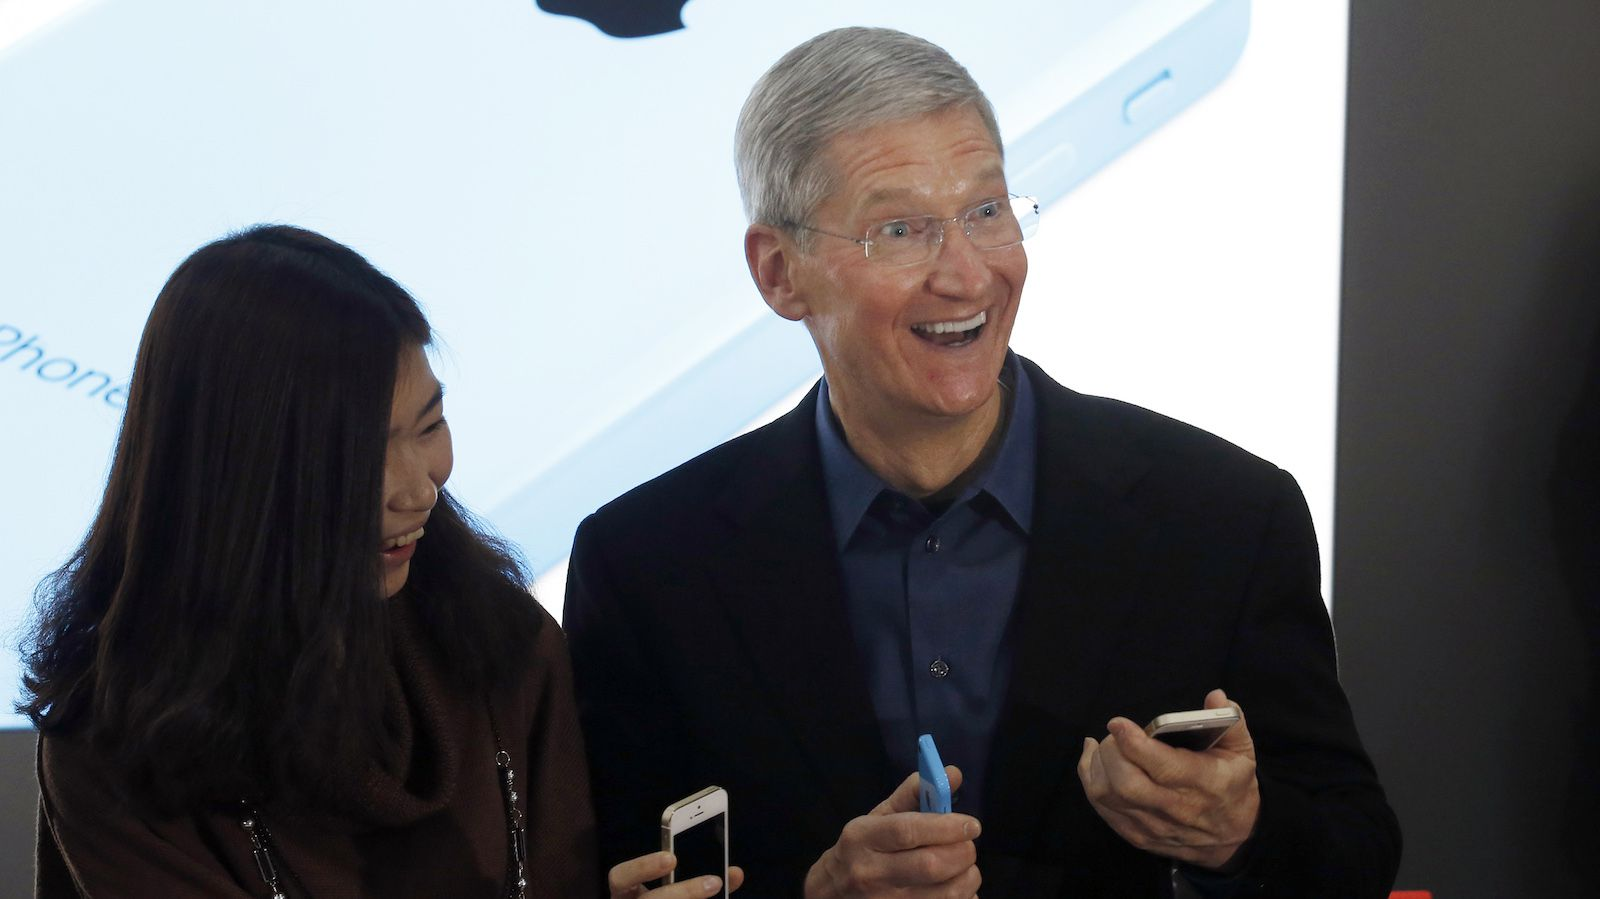 Apple Inc. CEO Tim Cook poses with a customer at an event celebrating the launch of Apple's iPhone on China Mobile's network in Beijing